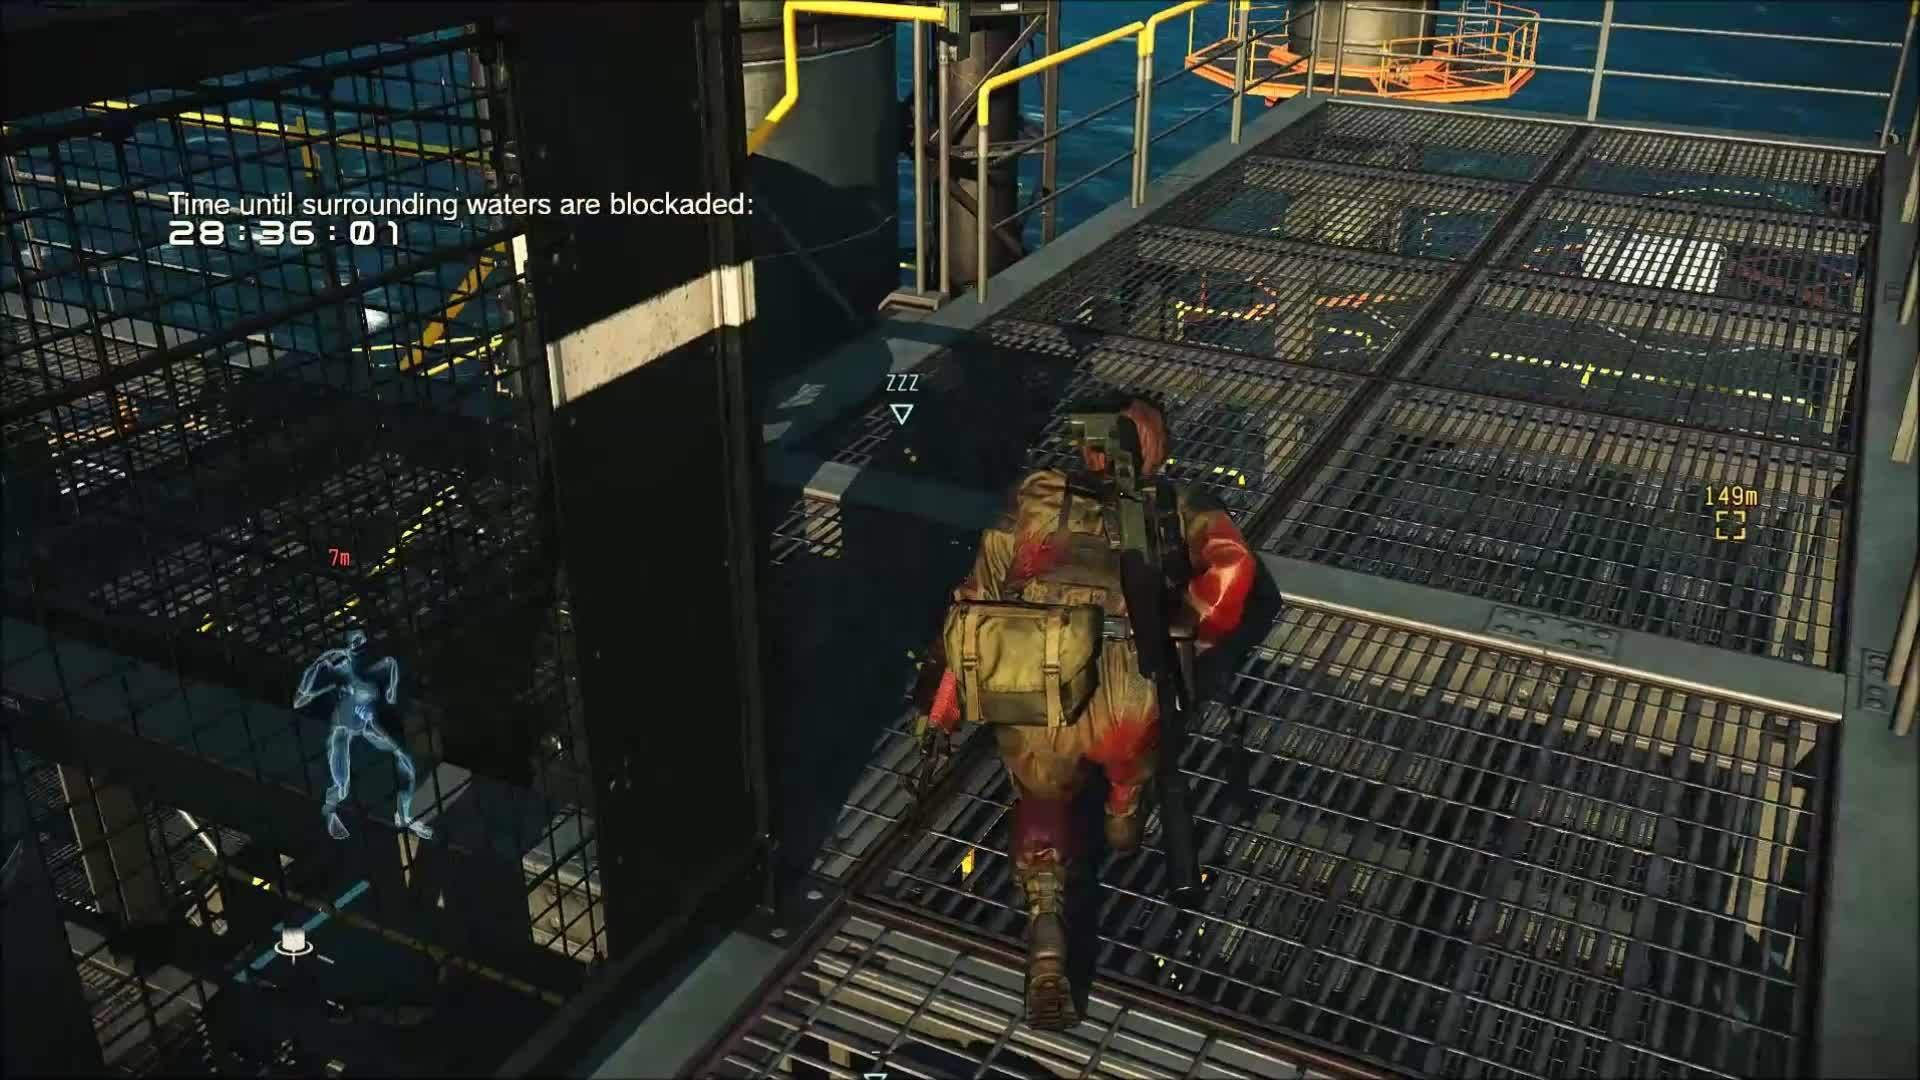 metalgearsolid, Taking ''Knock yourself out'' to the next level (reddit) GIFs